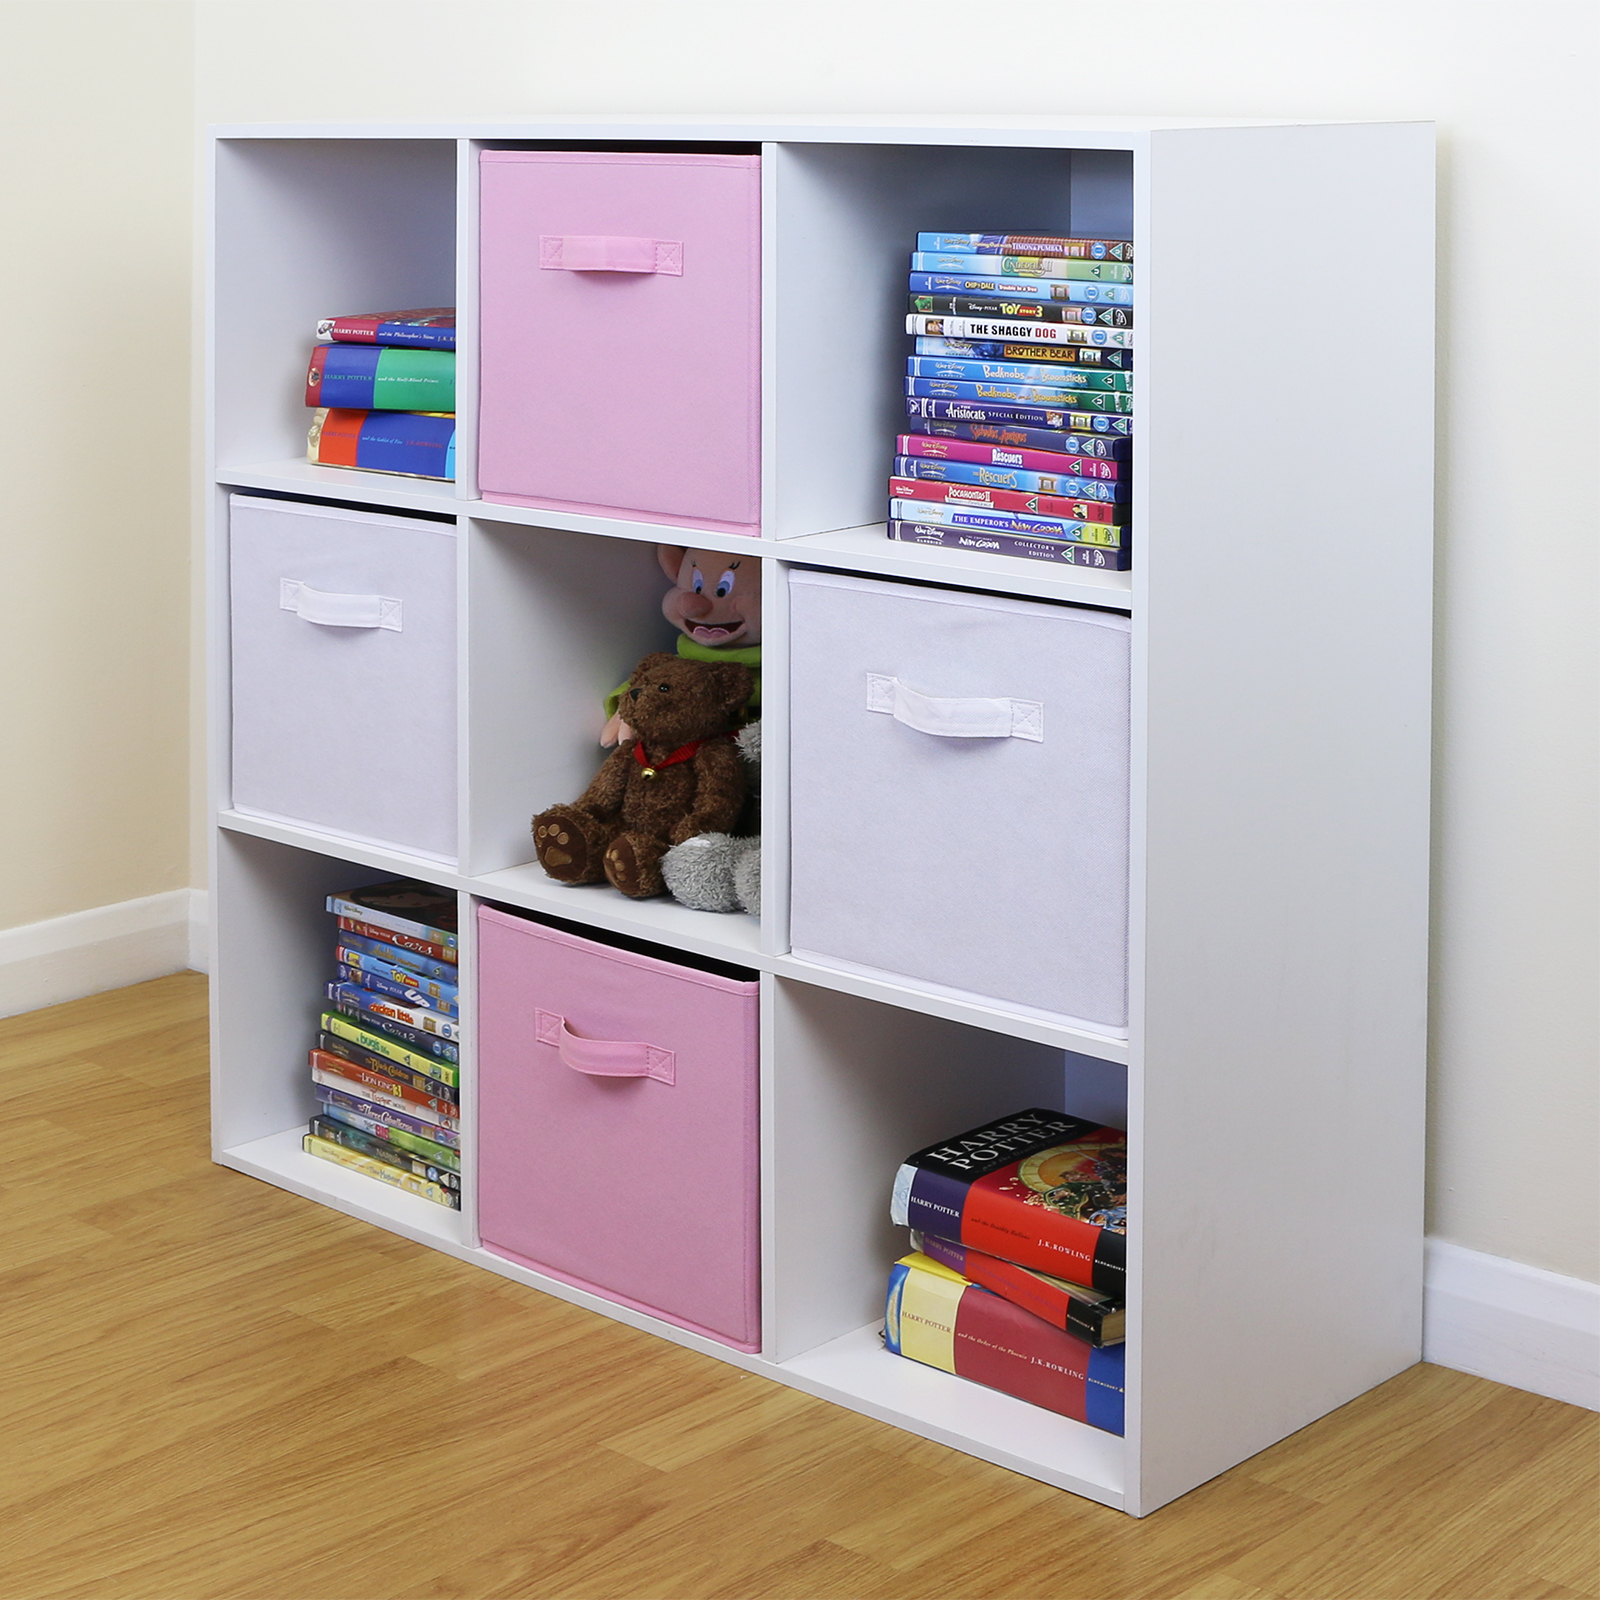 9 cube kids pink white toy games storage unit girls boys bedroom shelves boxes ebay - Toy shelves ikea ...